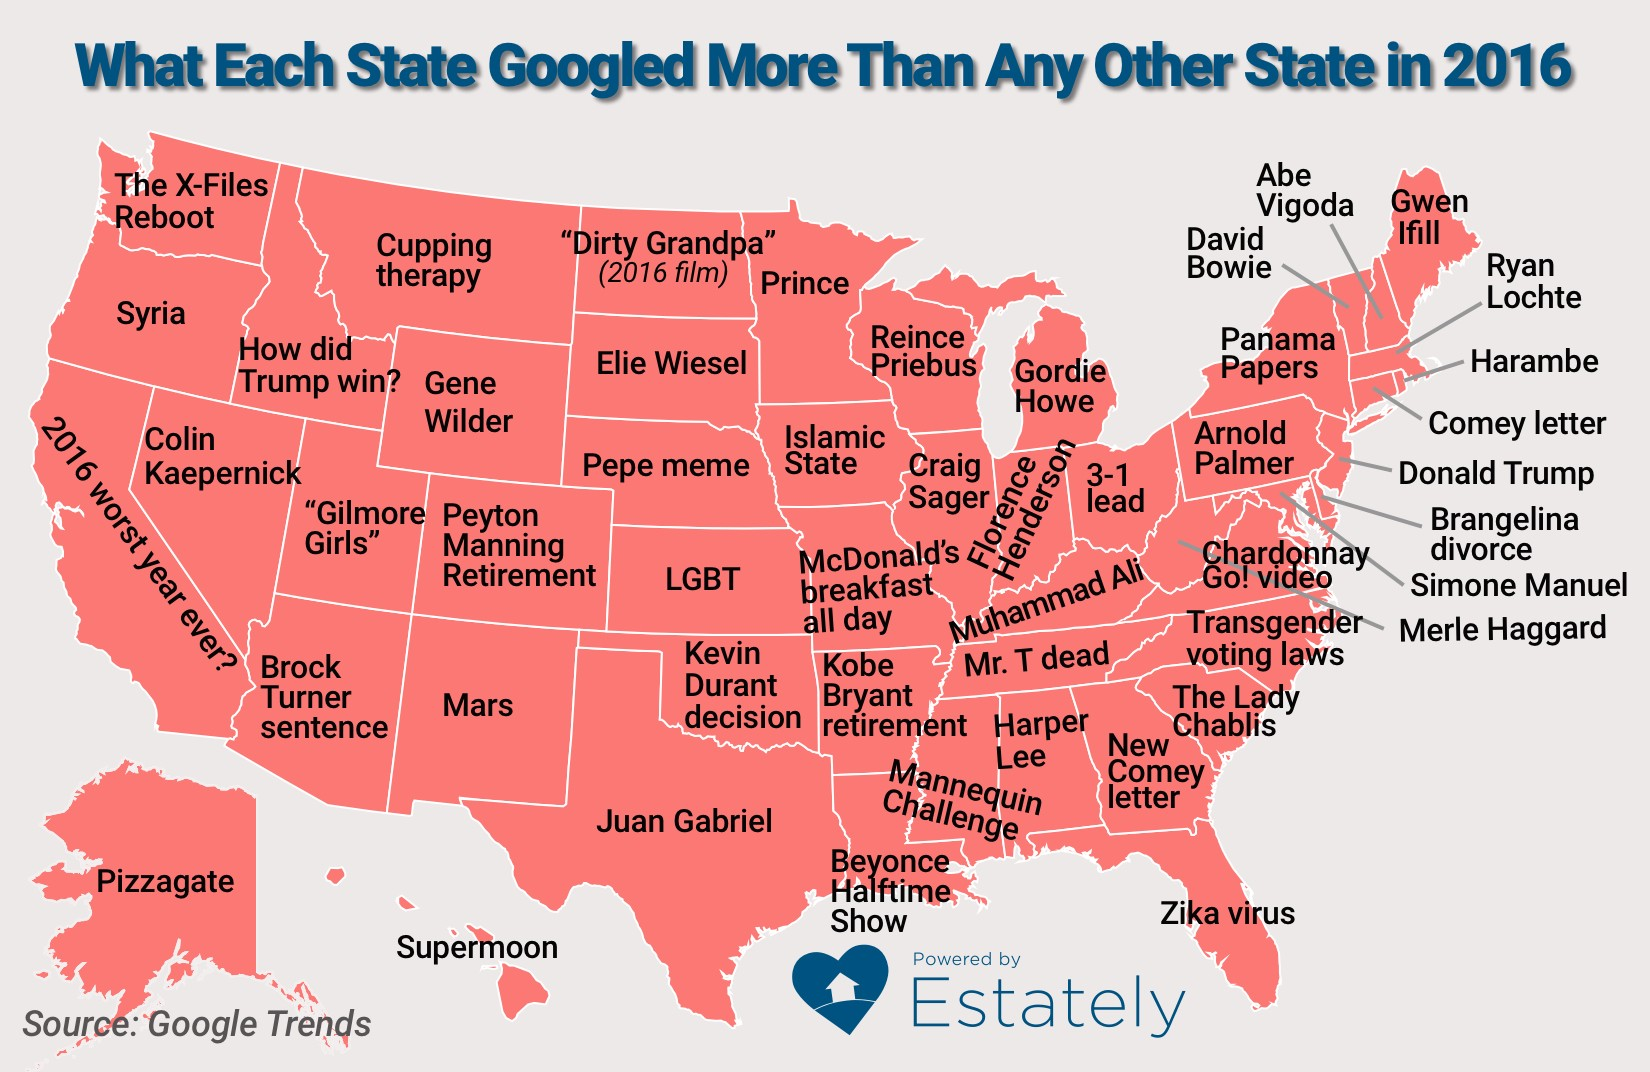 You'll never guess what Michigan googled more than any other